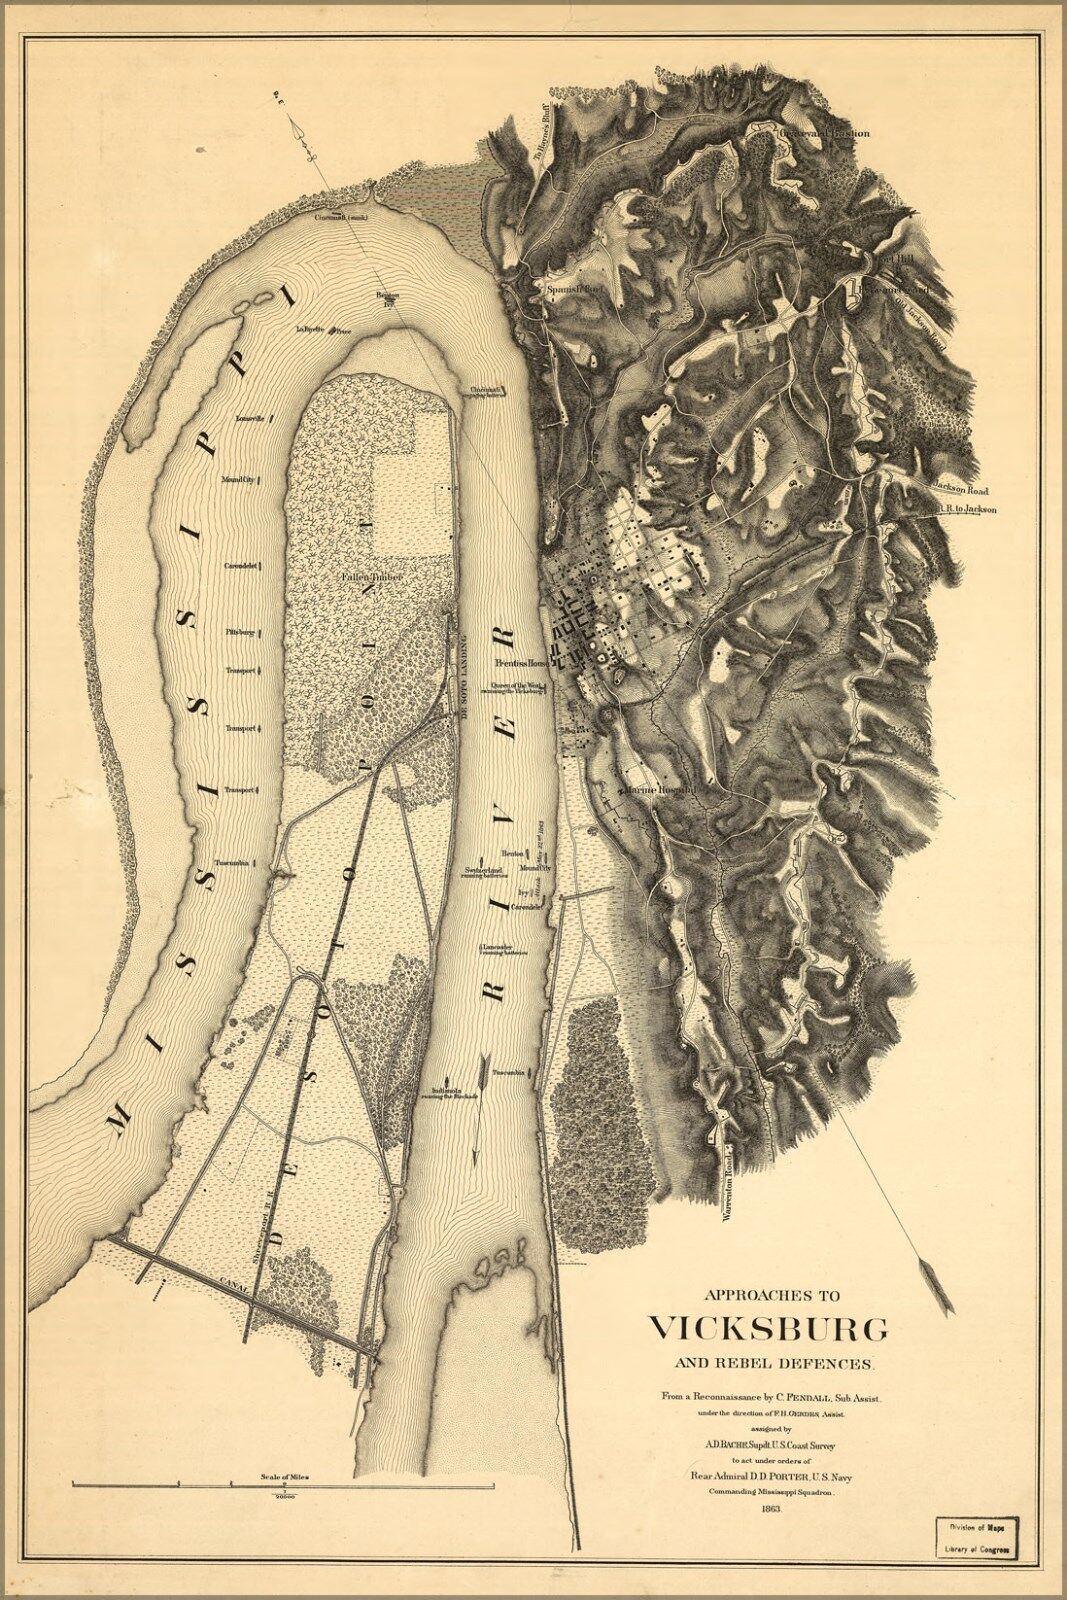 Poster, Many Größes; Map Of Vicksburg Approaches & Rebel Defences 1863